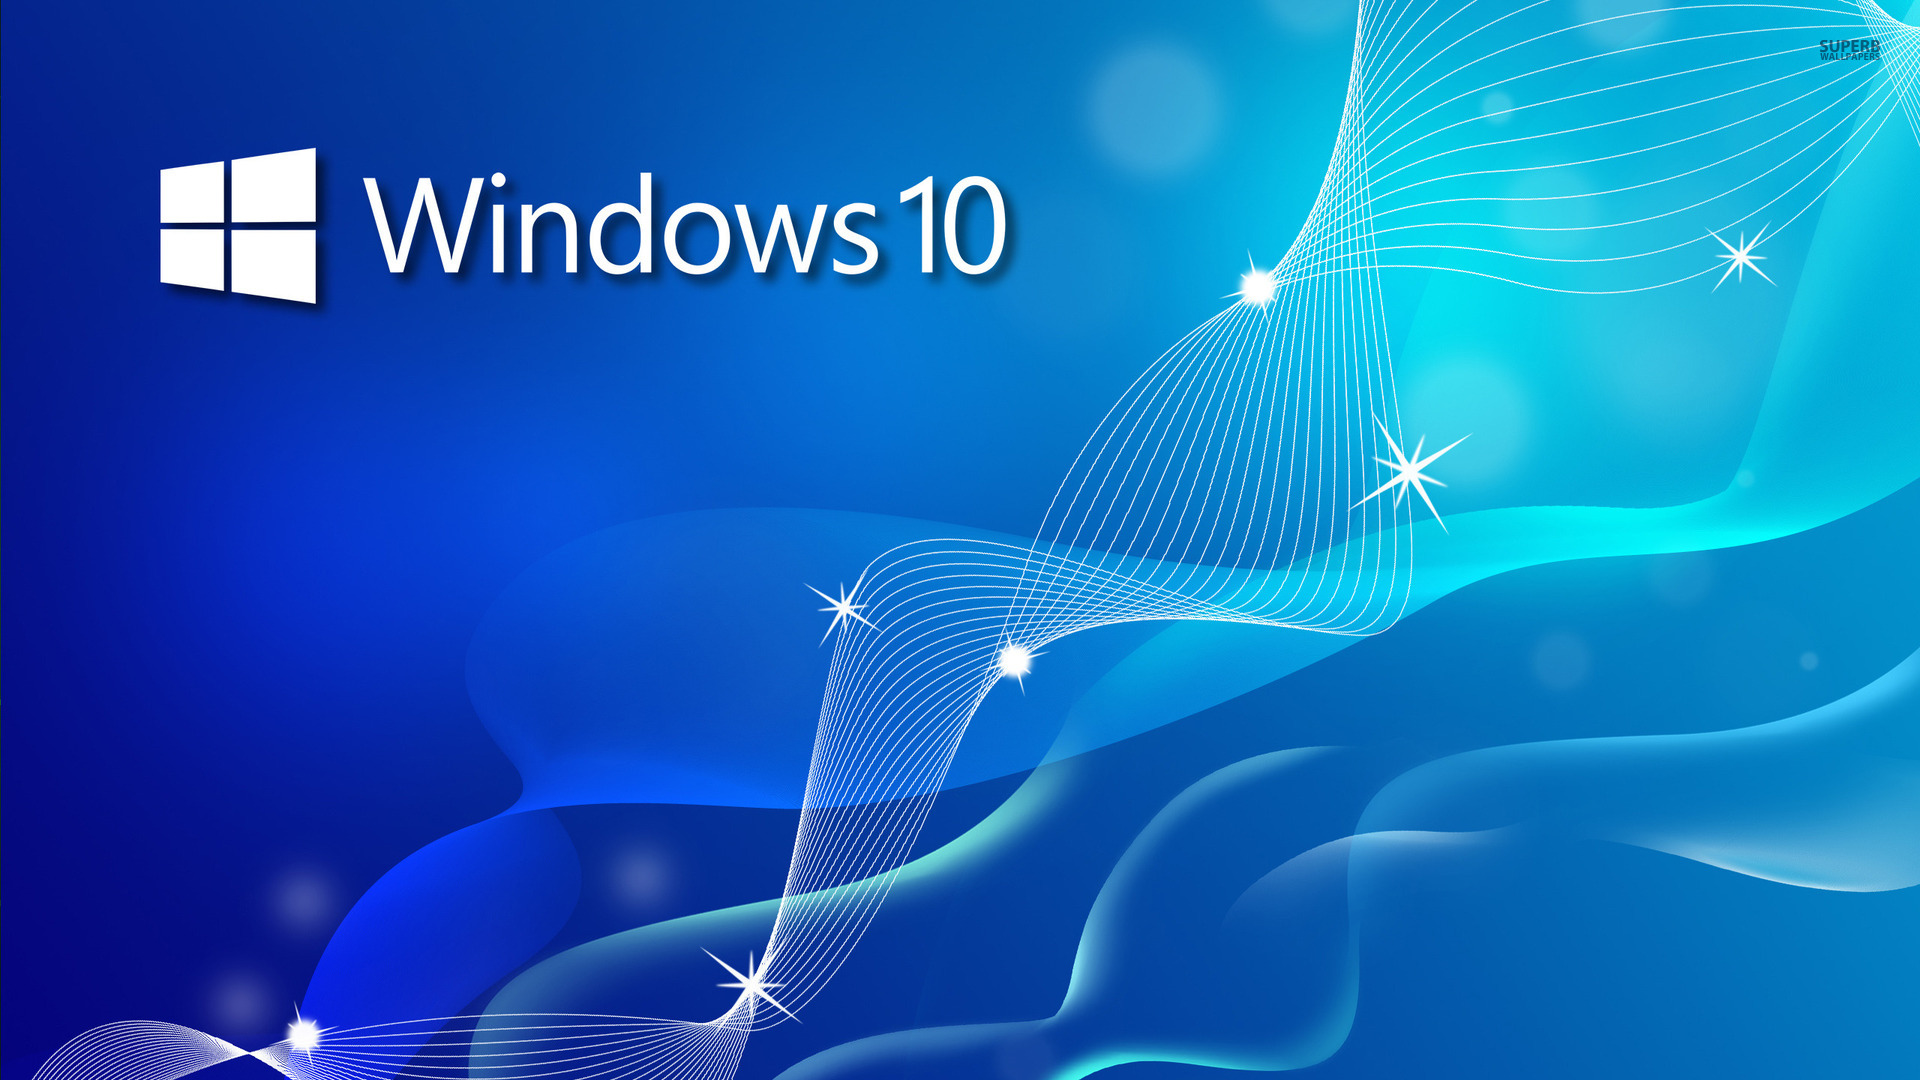 Windows 10 Wallpaper Windows 10 Full Hd Wallpaper Windows